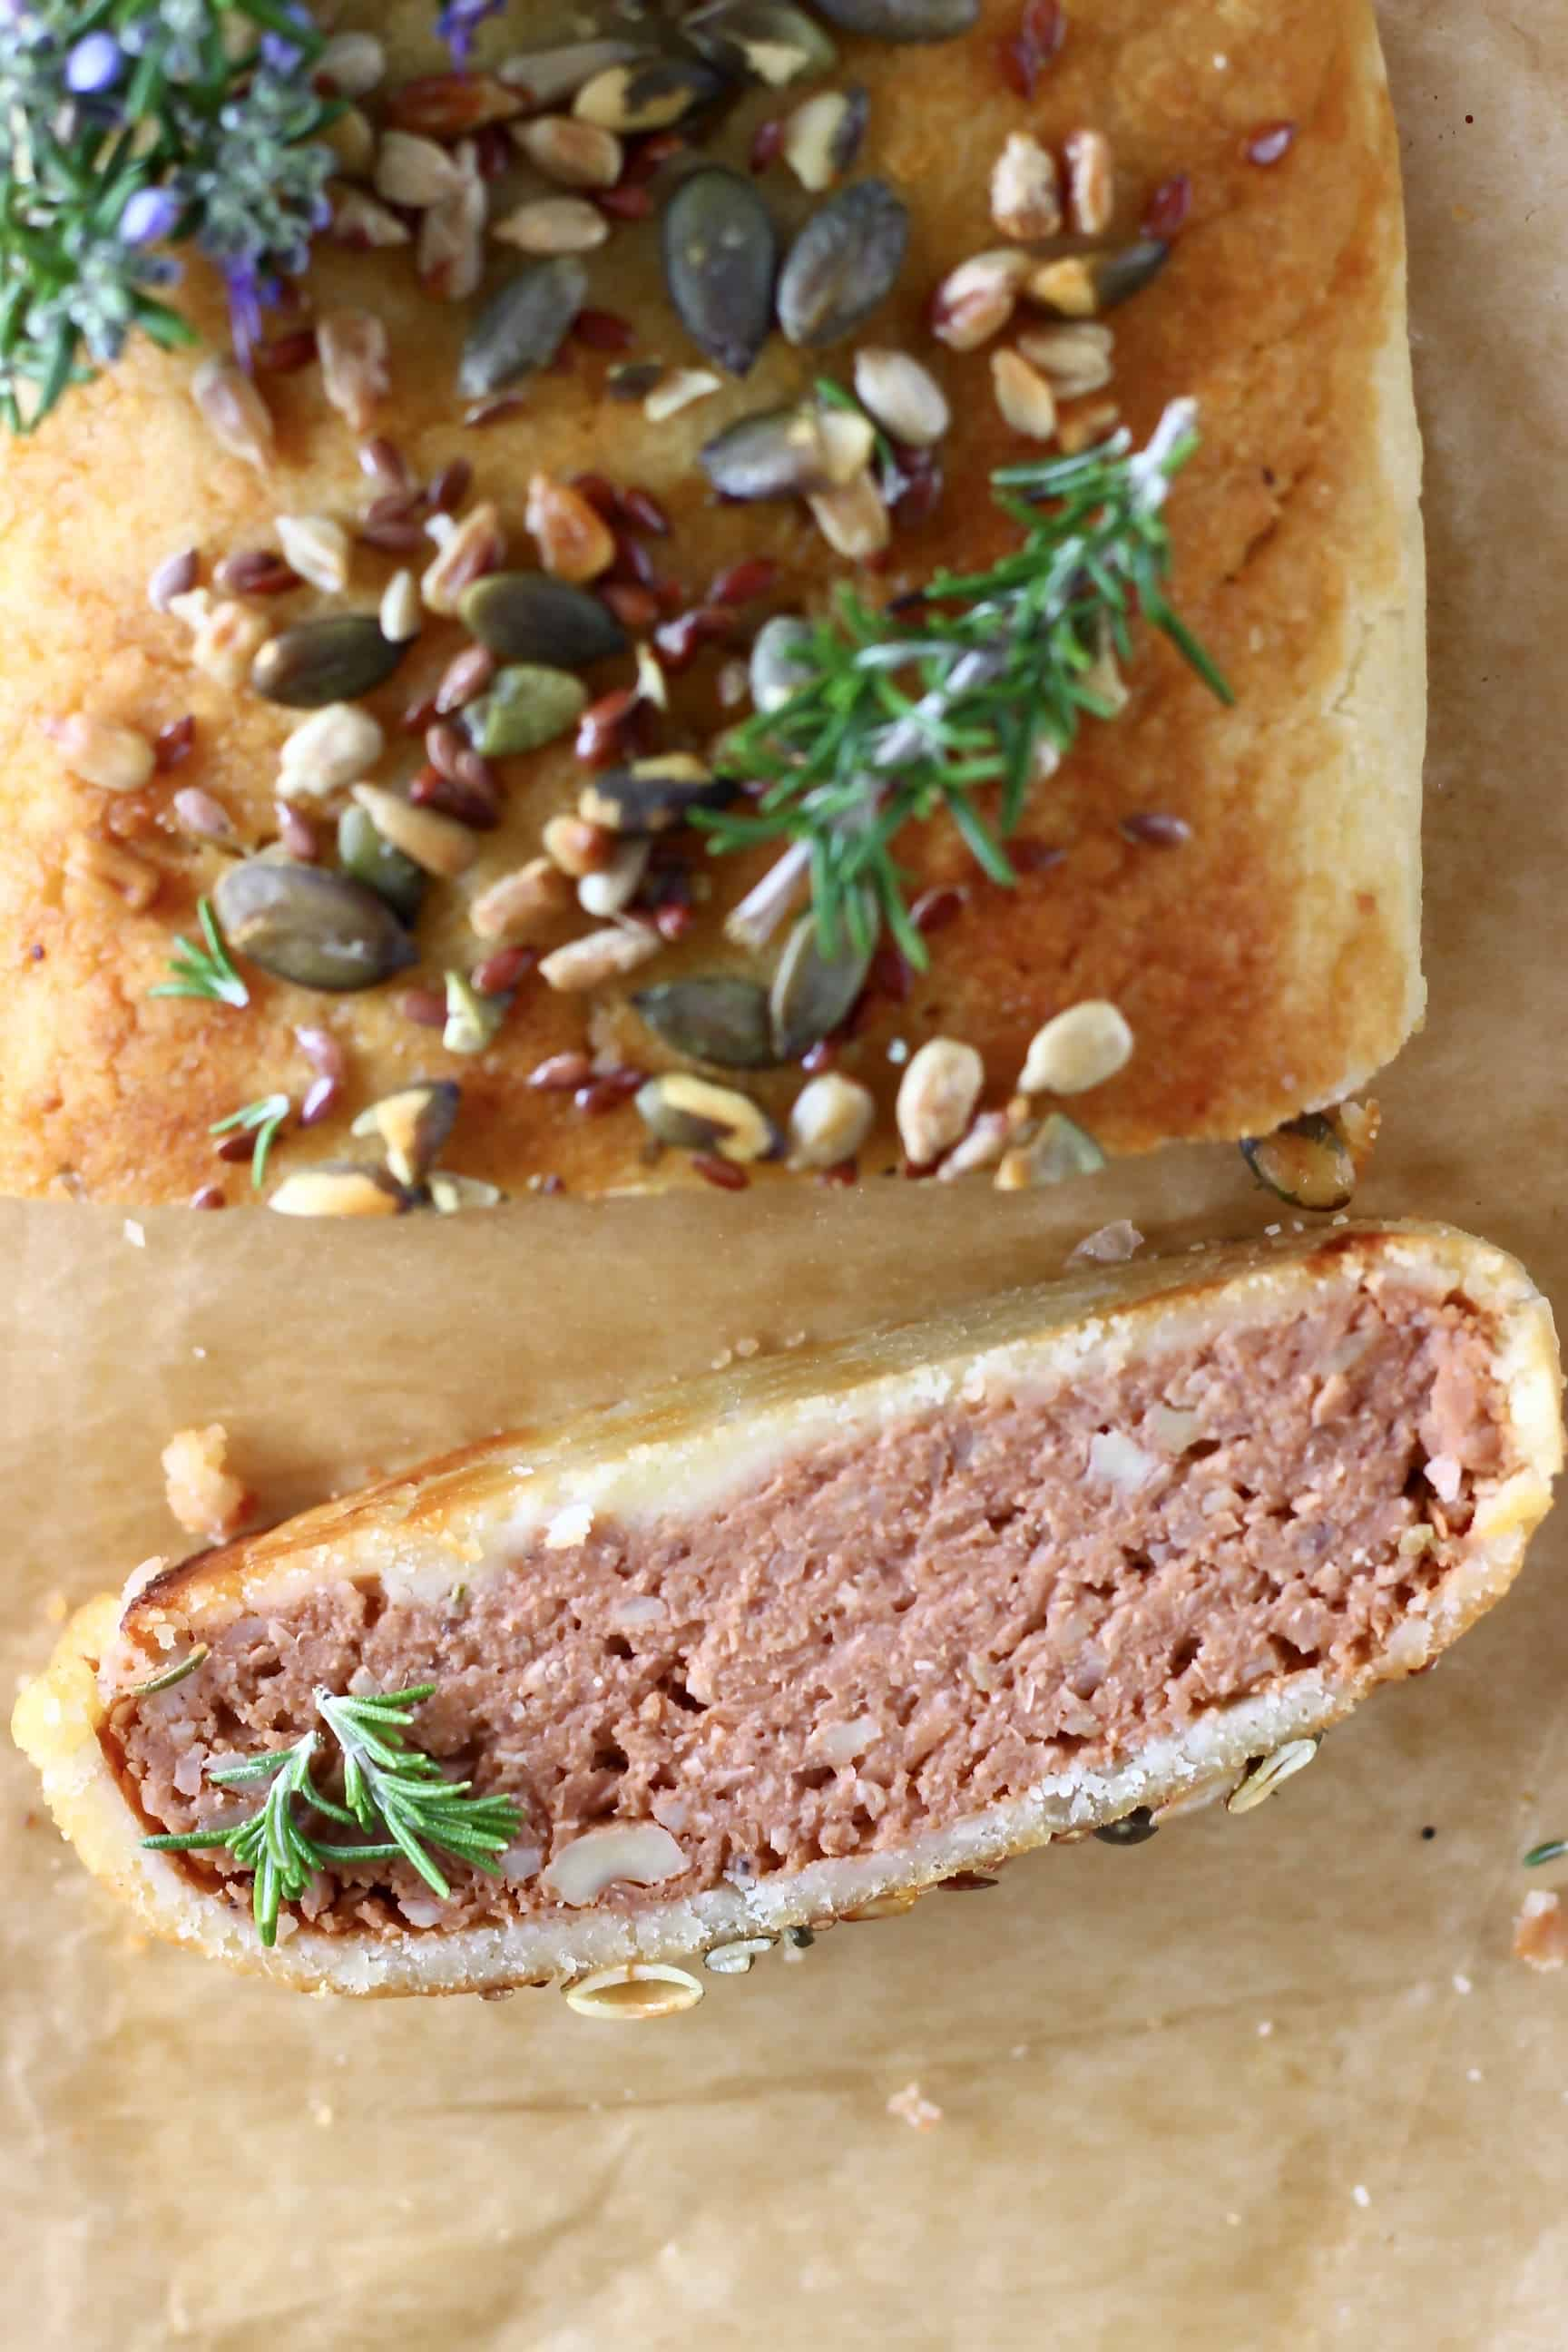 A vegan Wellington topped with mixed seeds with a slice of it on the side on a sheet of brown baking paper